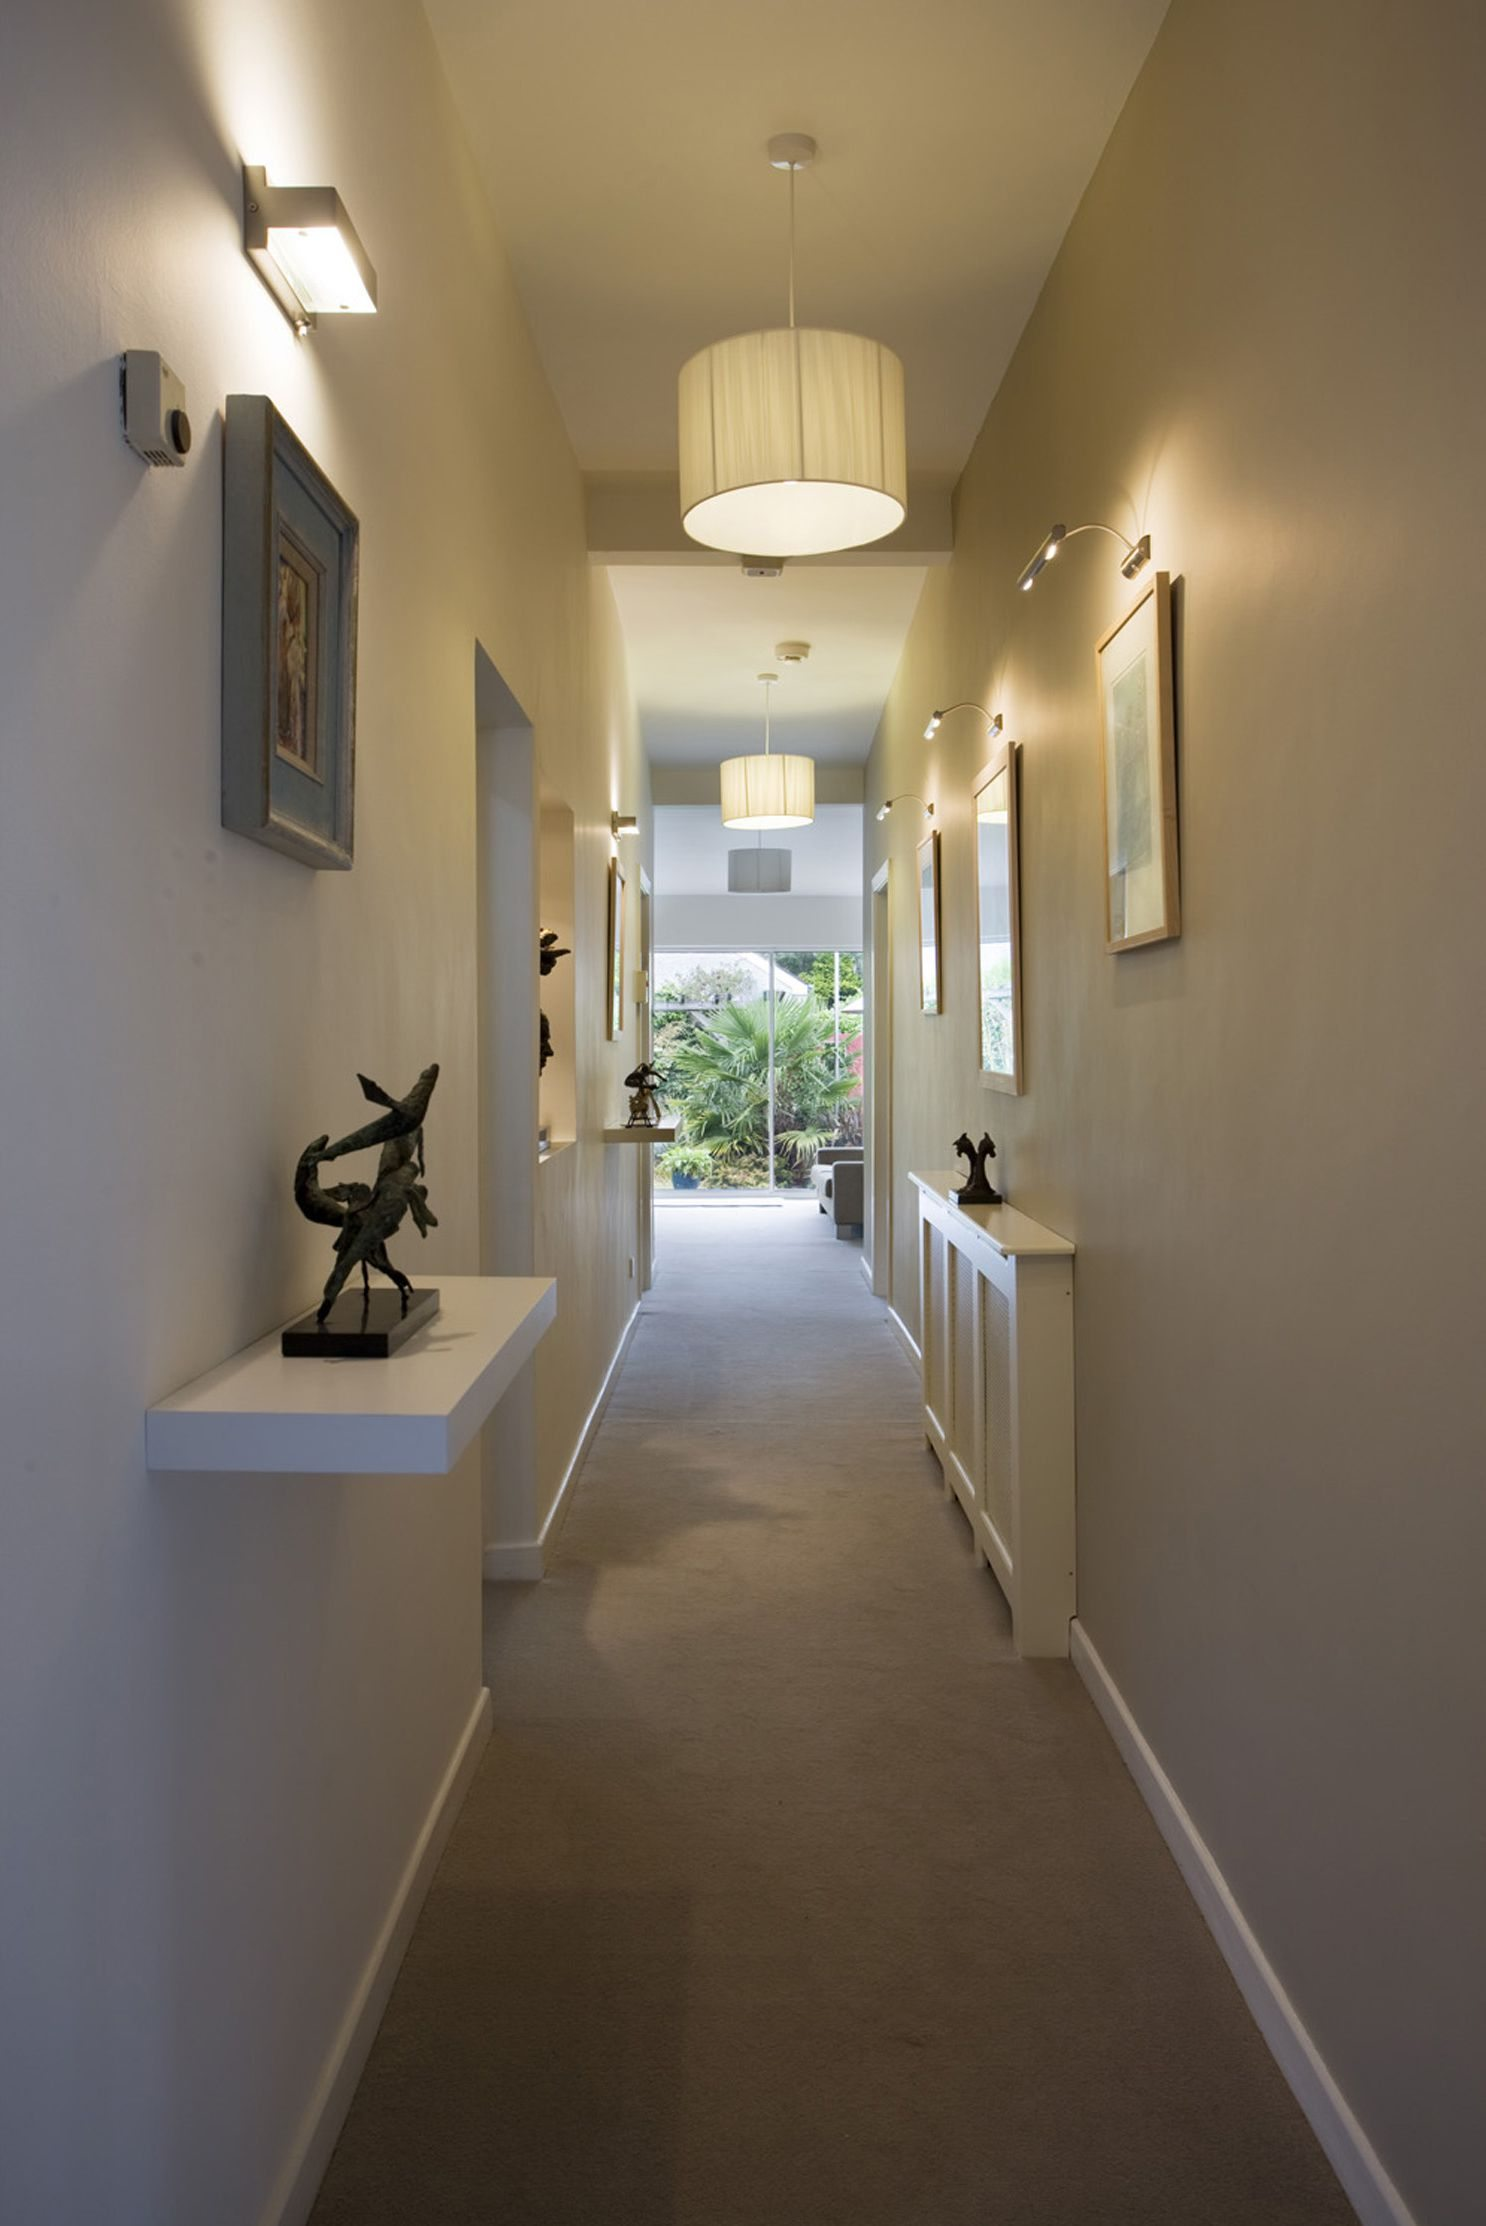 Wall Lights In Hallway : Make your hallways bright with our wall lights Warisan Lighting